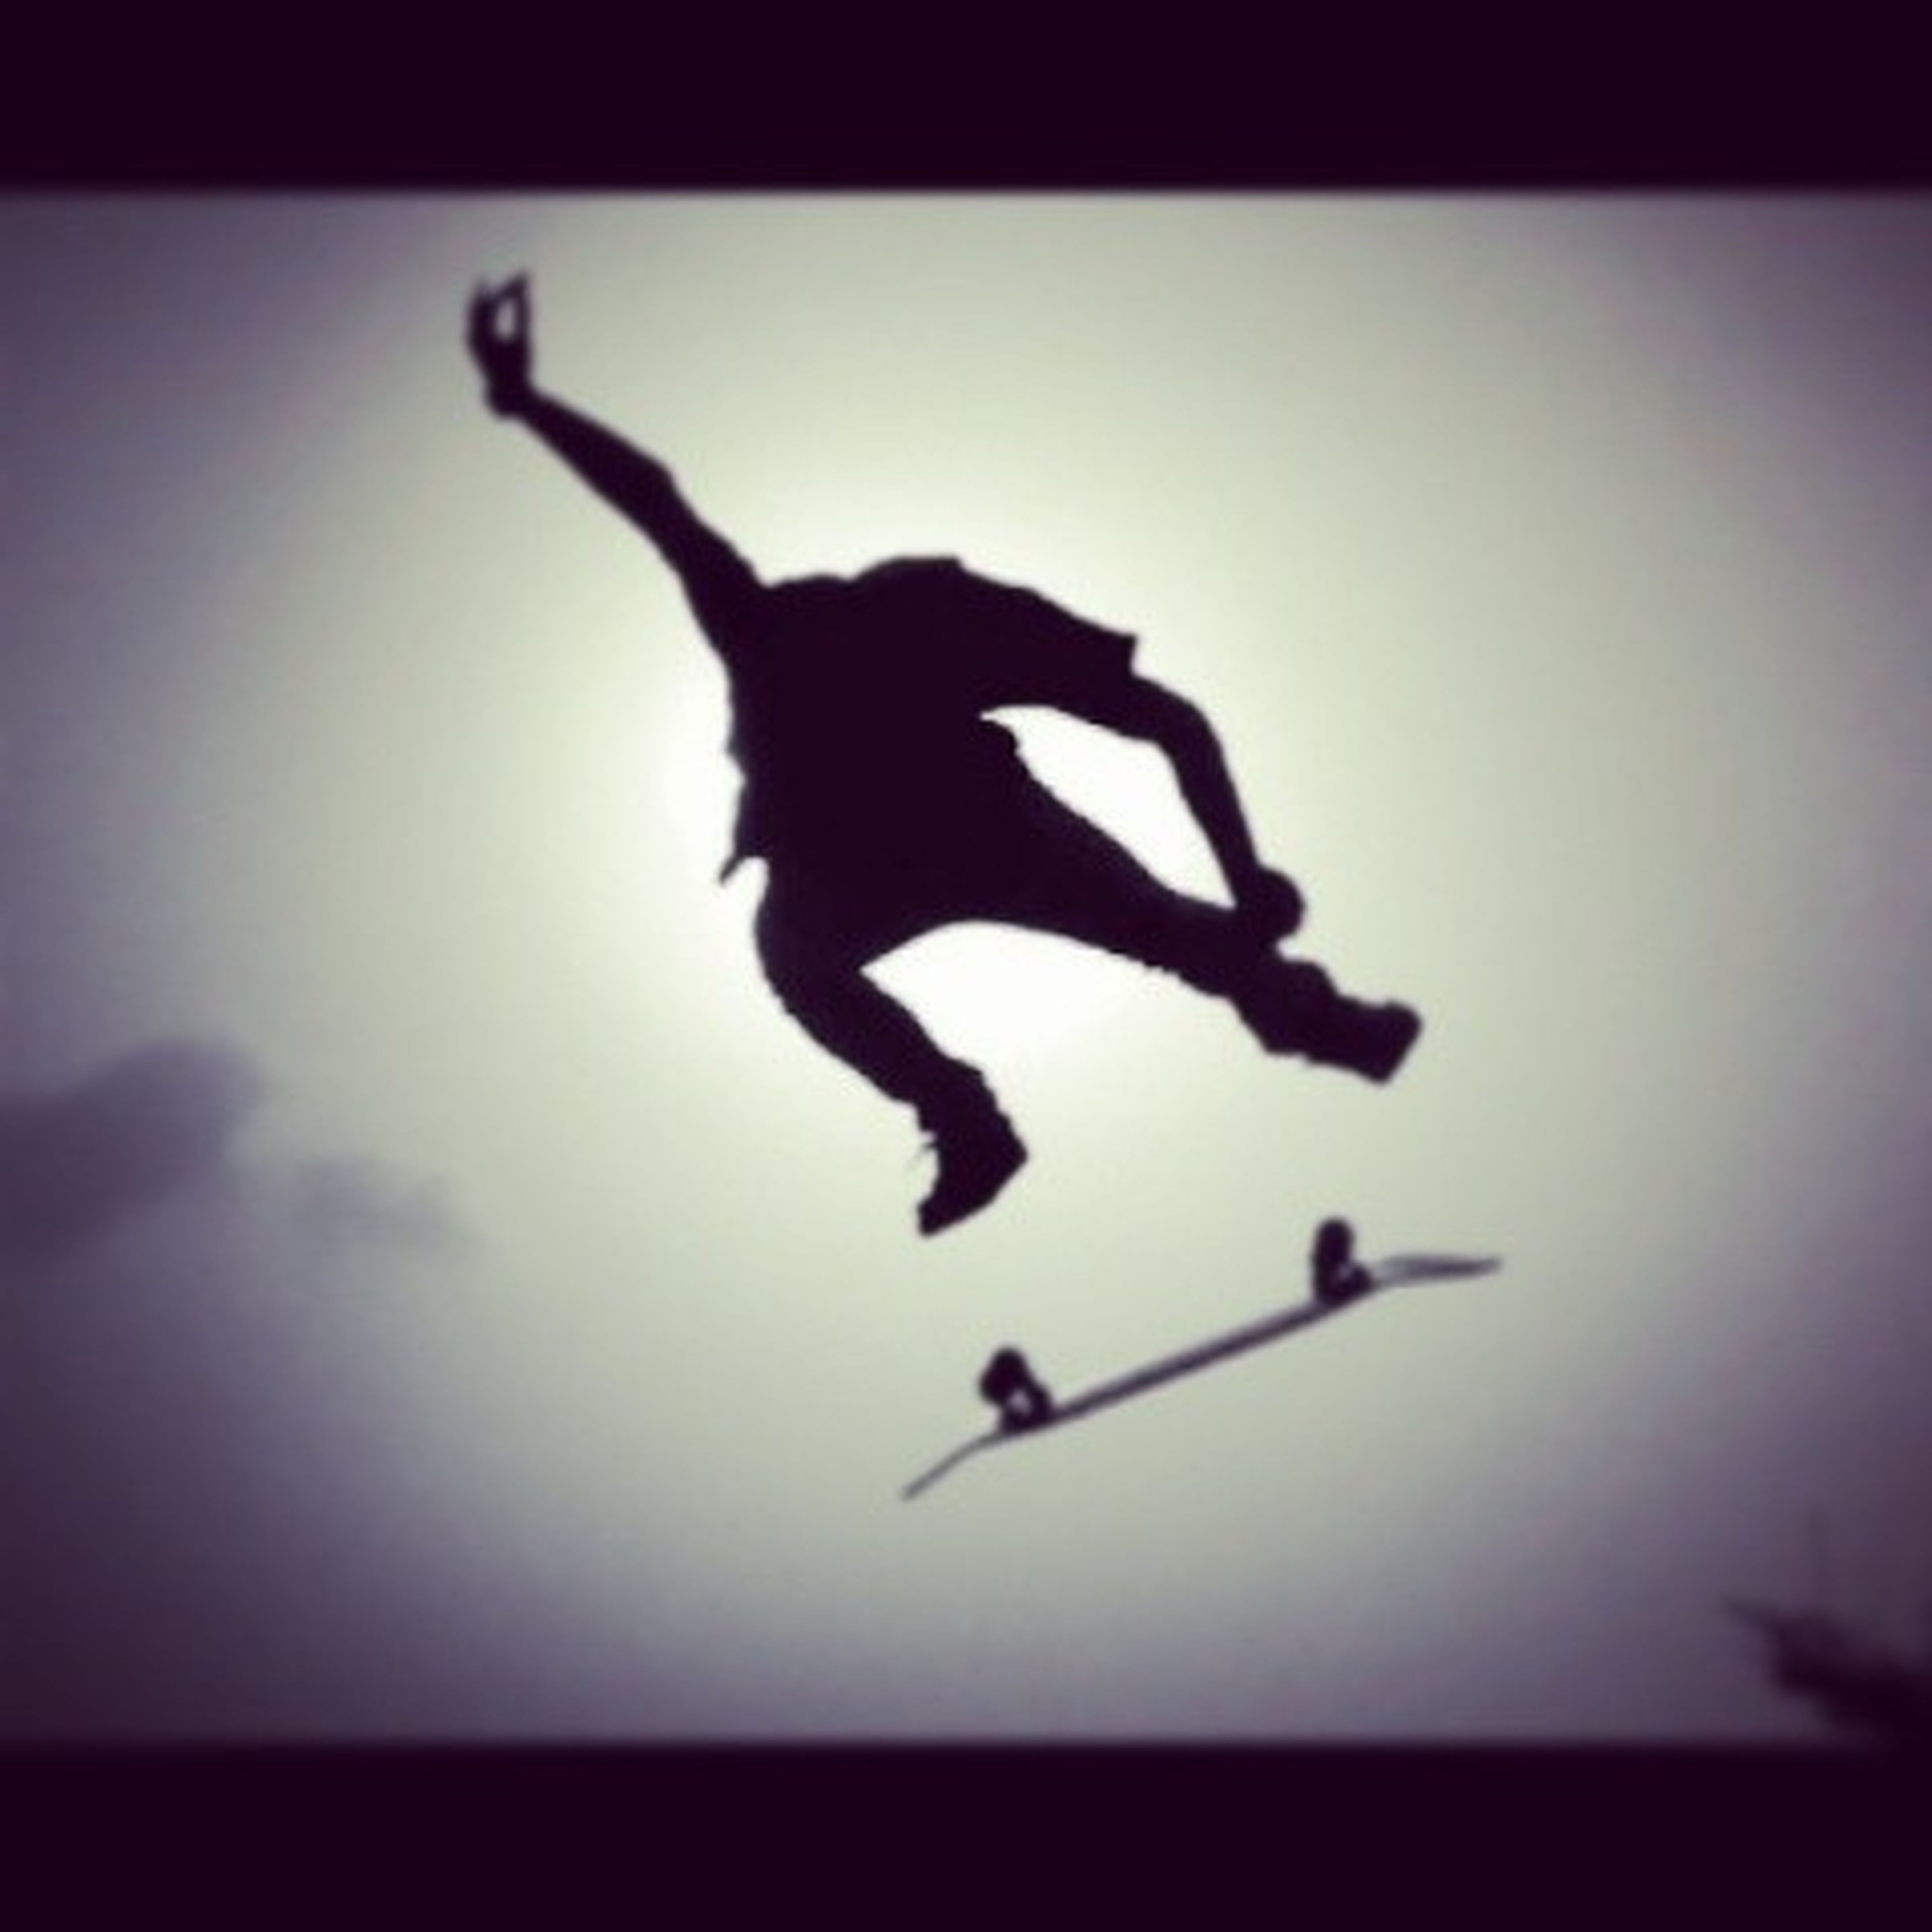 silhouette, transfer print, auto post production filter, mid-air, full length, clear sky, flying, copy space, selective focus, motion, wildlife, low angle view, lifestyles, vignette, leisure activity, animal themes, dusk, outdoors